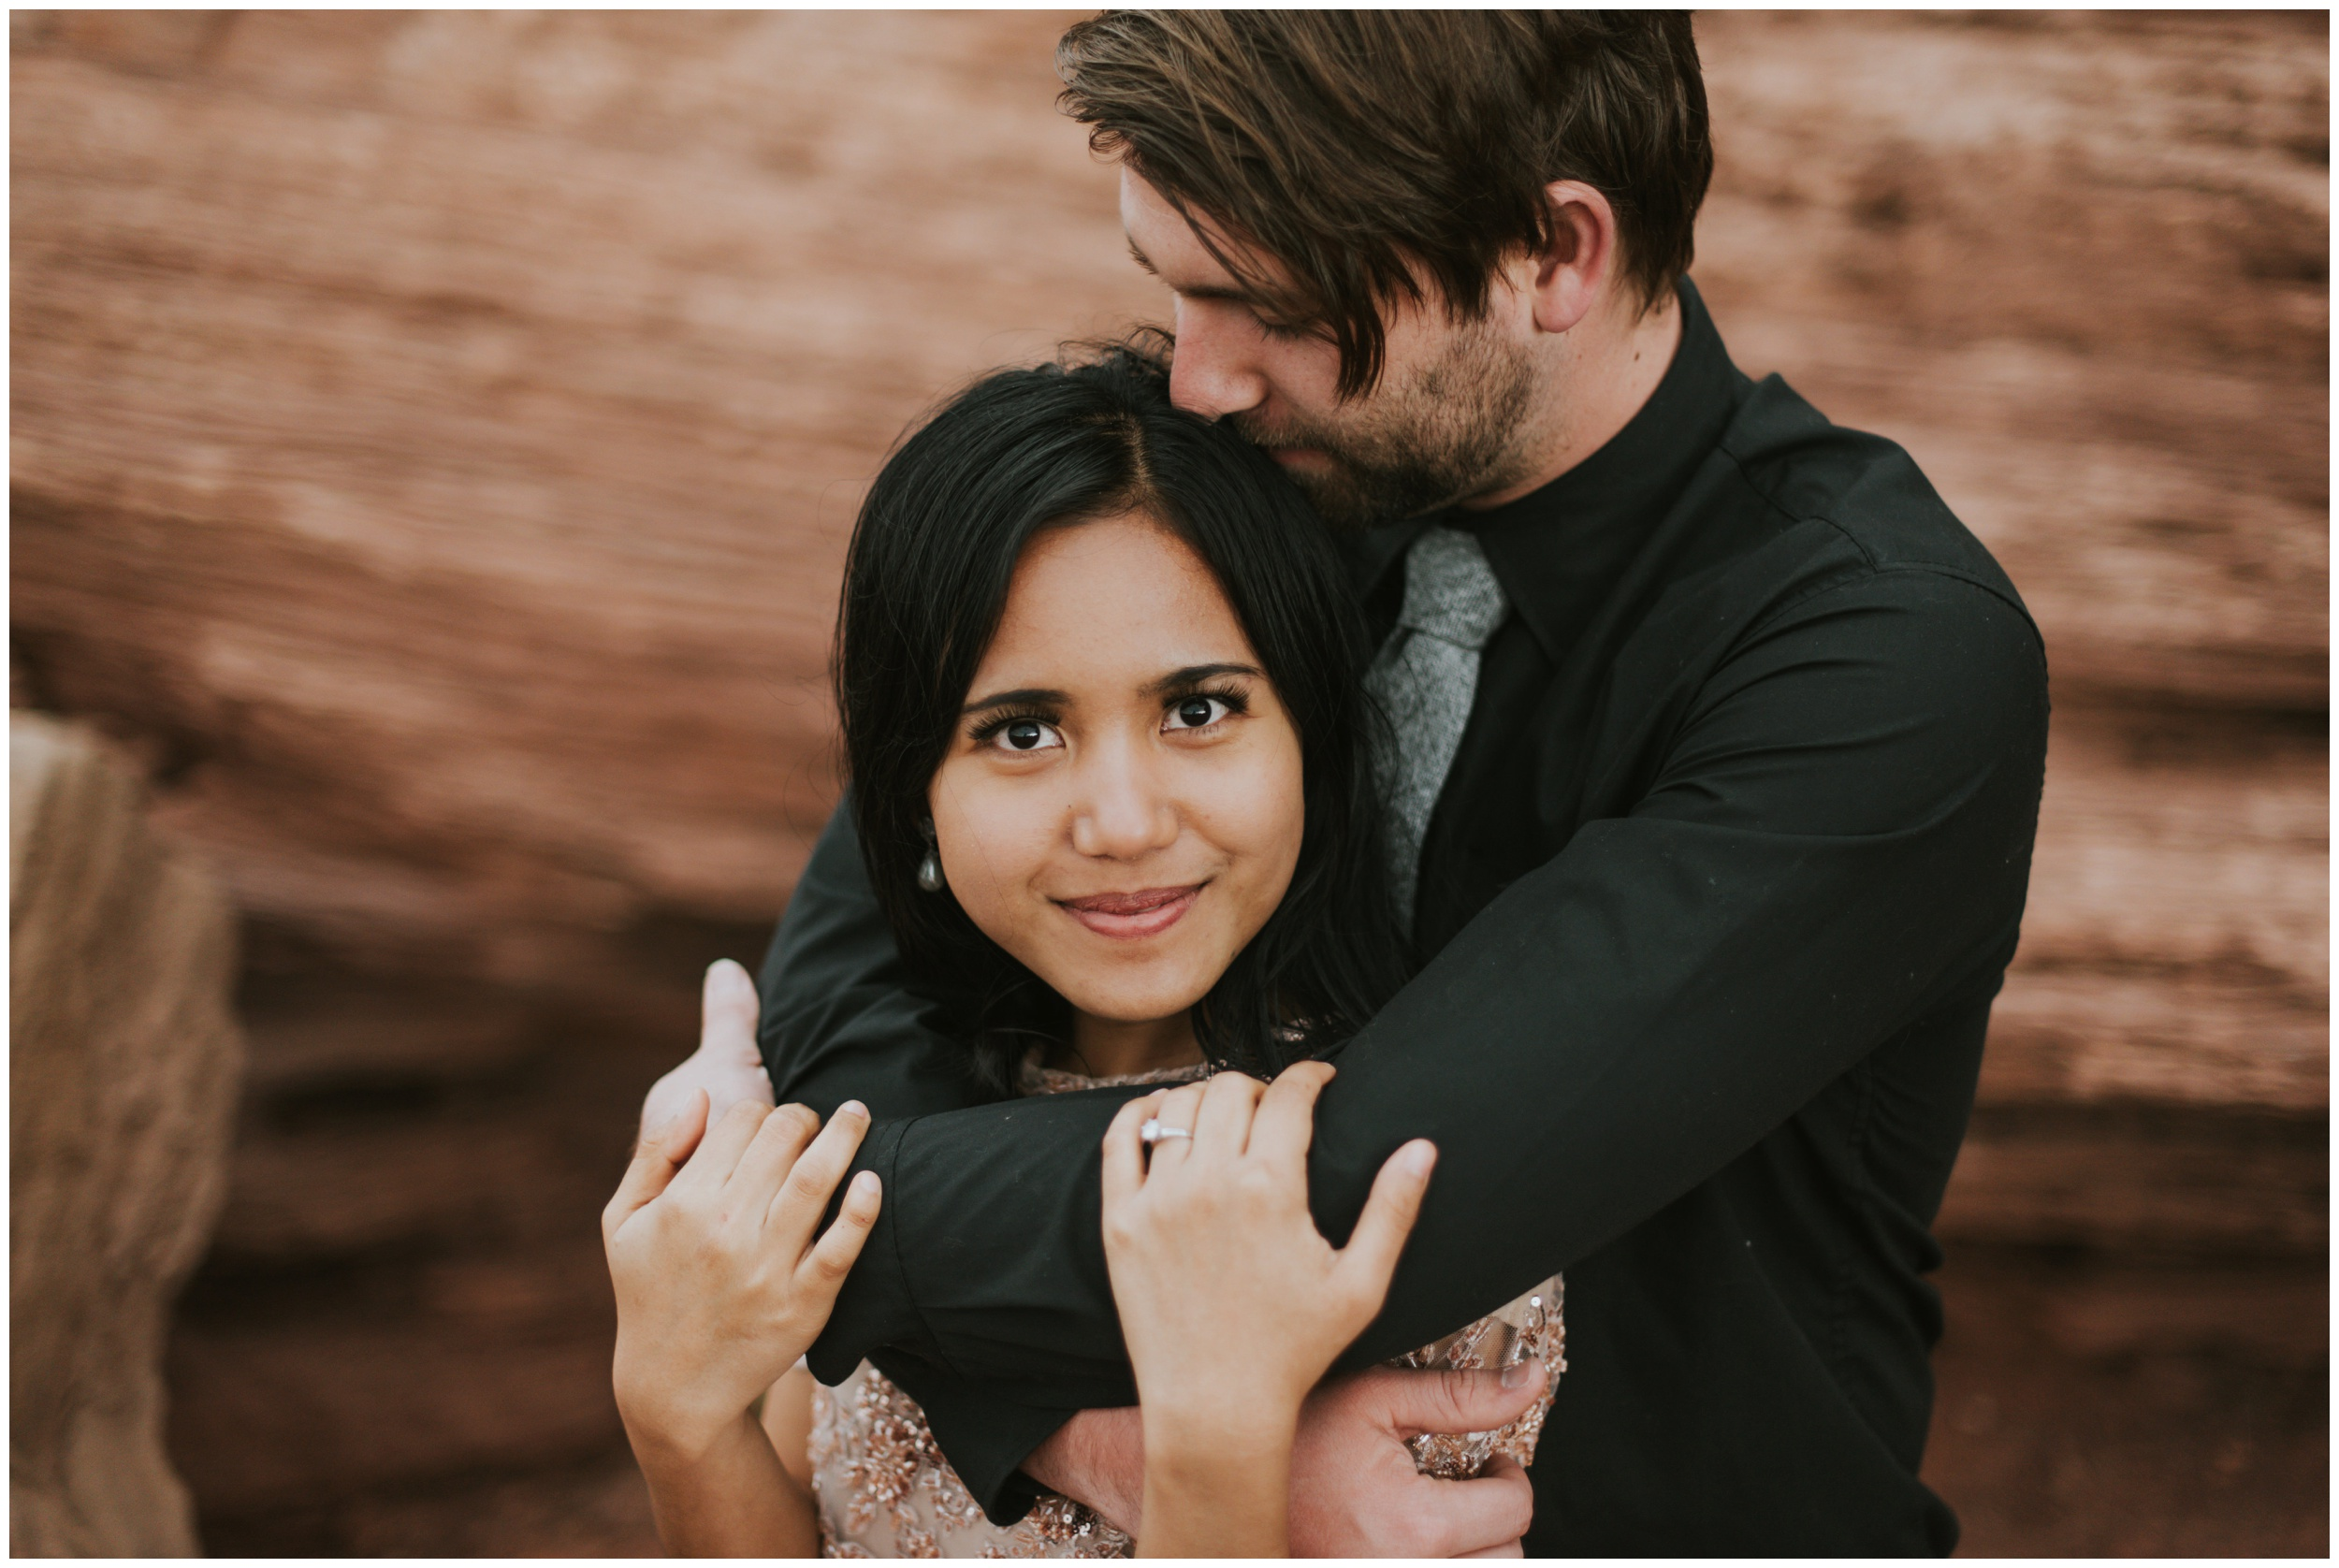 stunning bride eloping at dead horse point | Elopement Photographer www.riversandroadsphotography.com